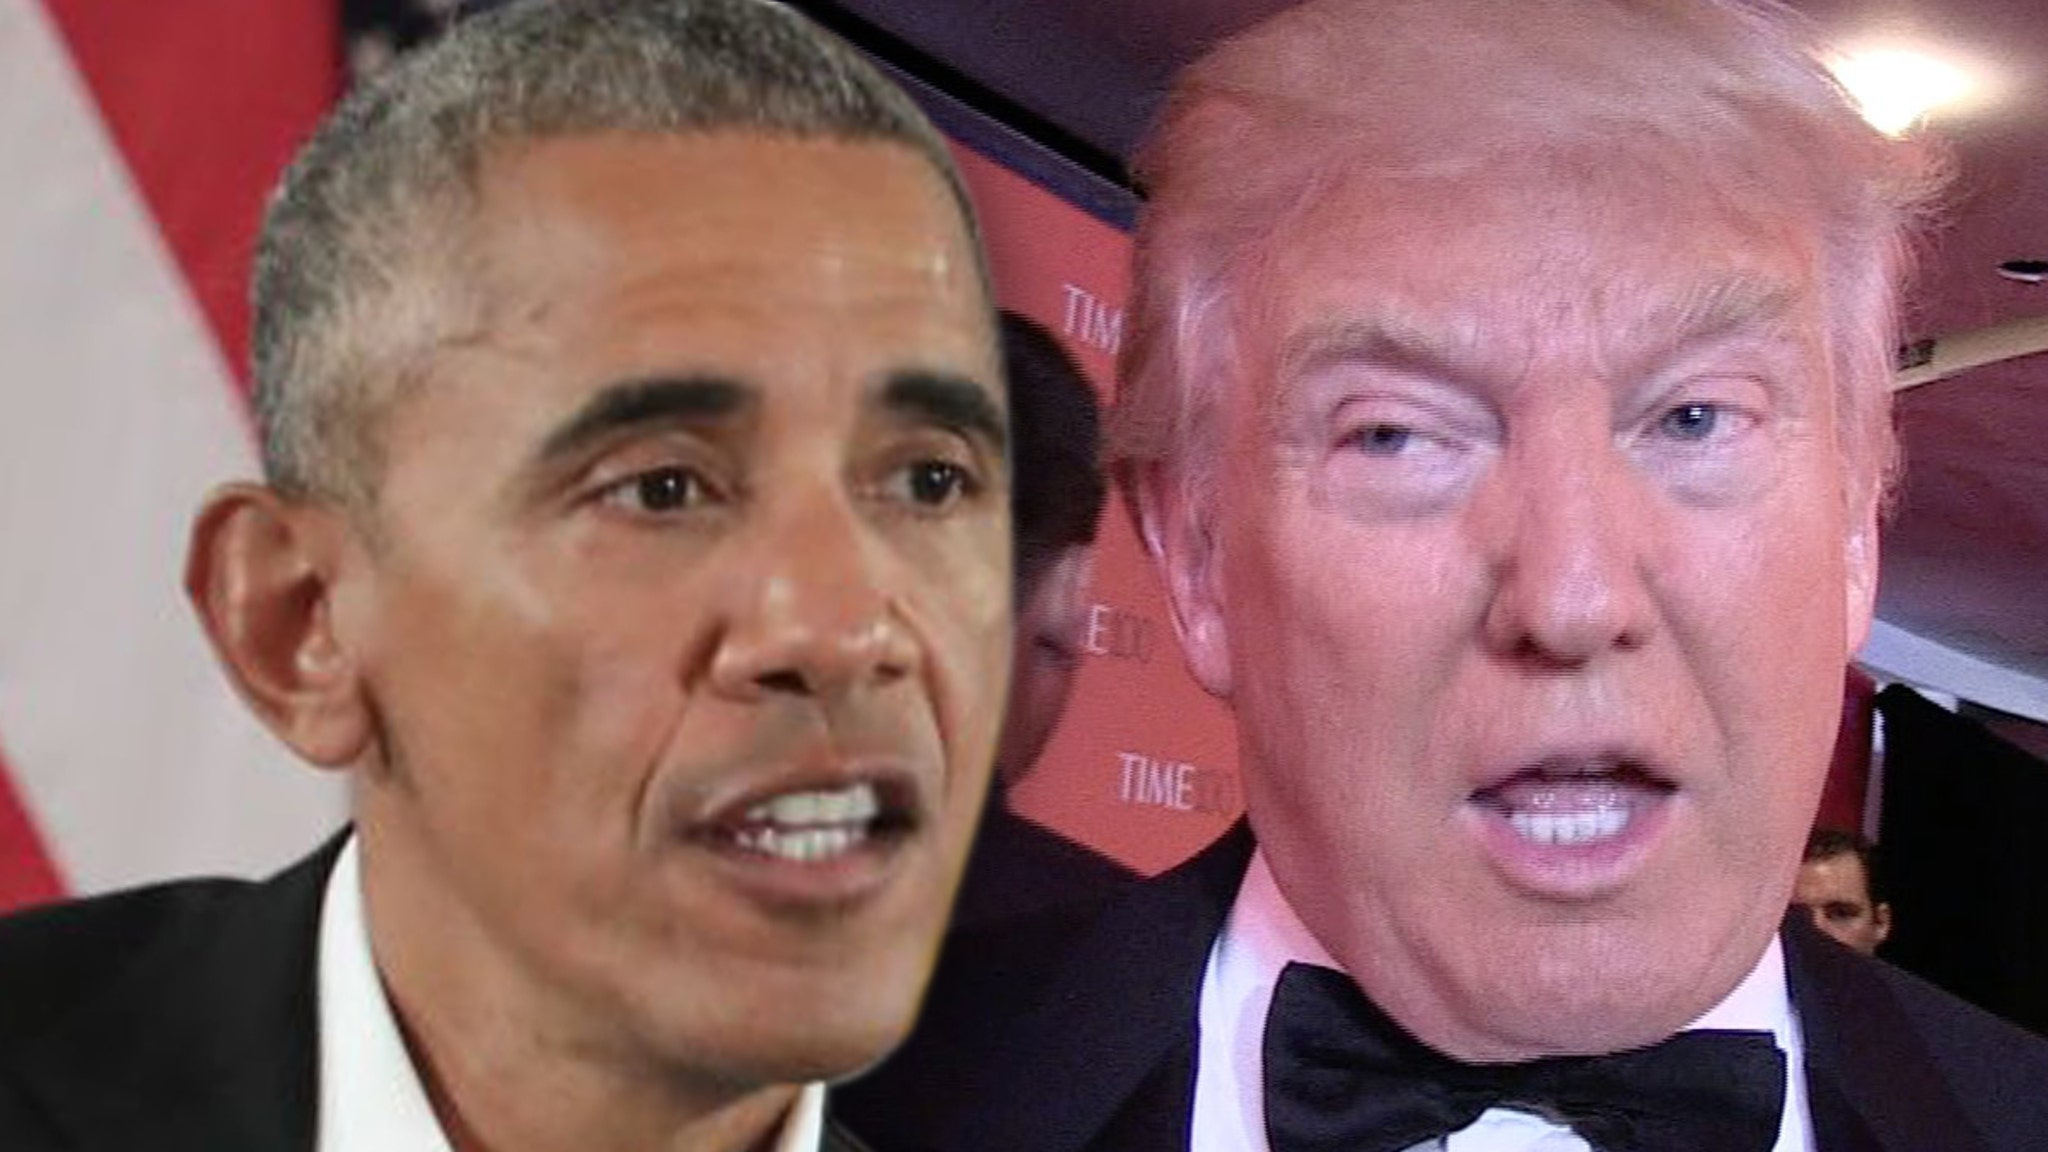 Barack Obama and Donald Trump Tie As Most Admired Man in 2019 - EpicNews